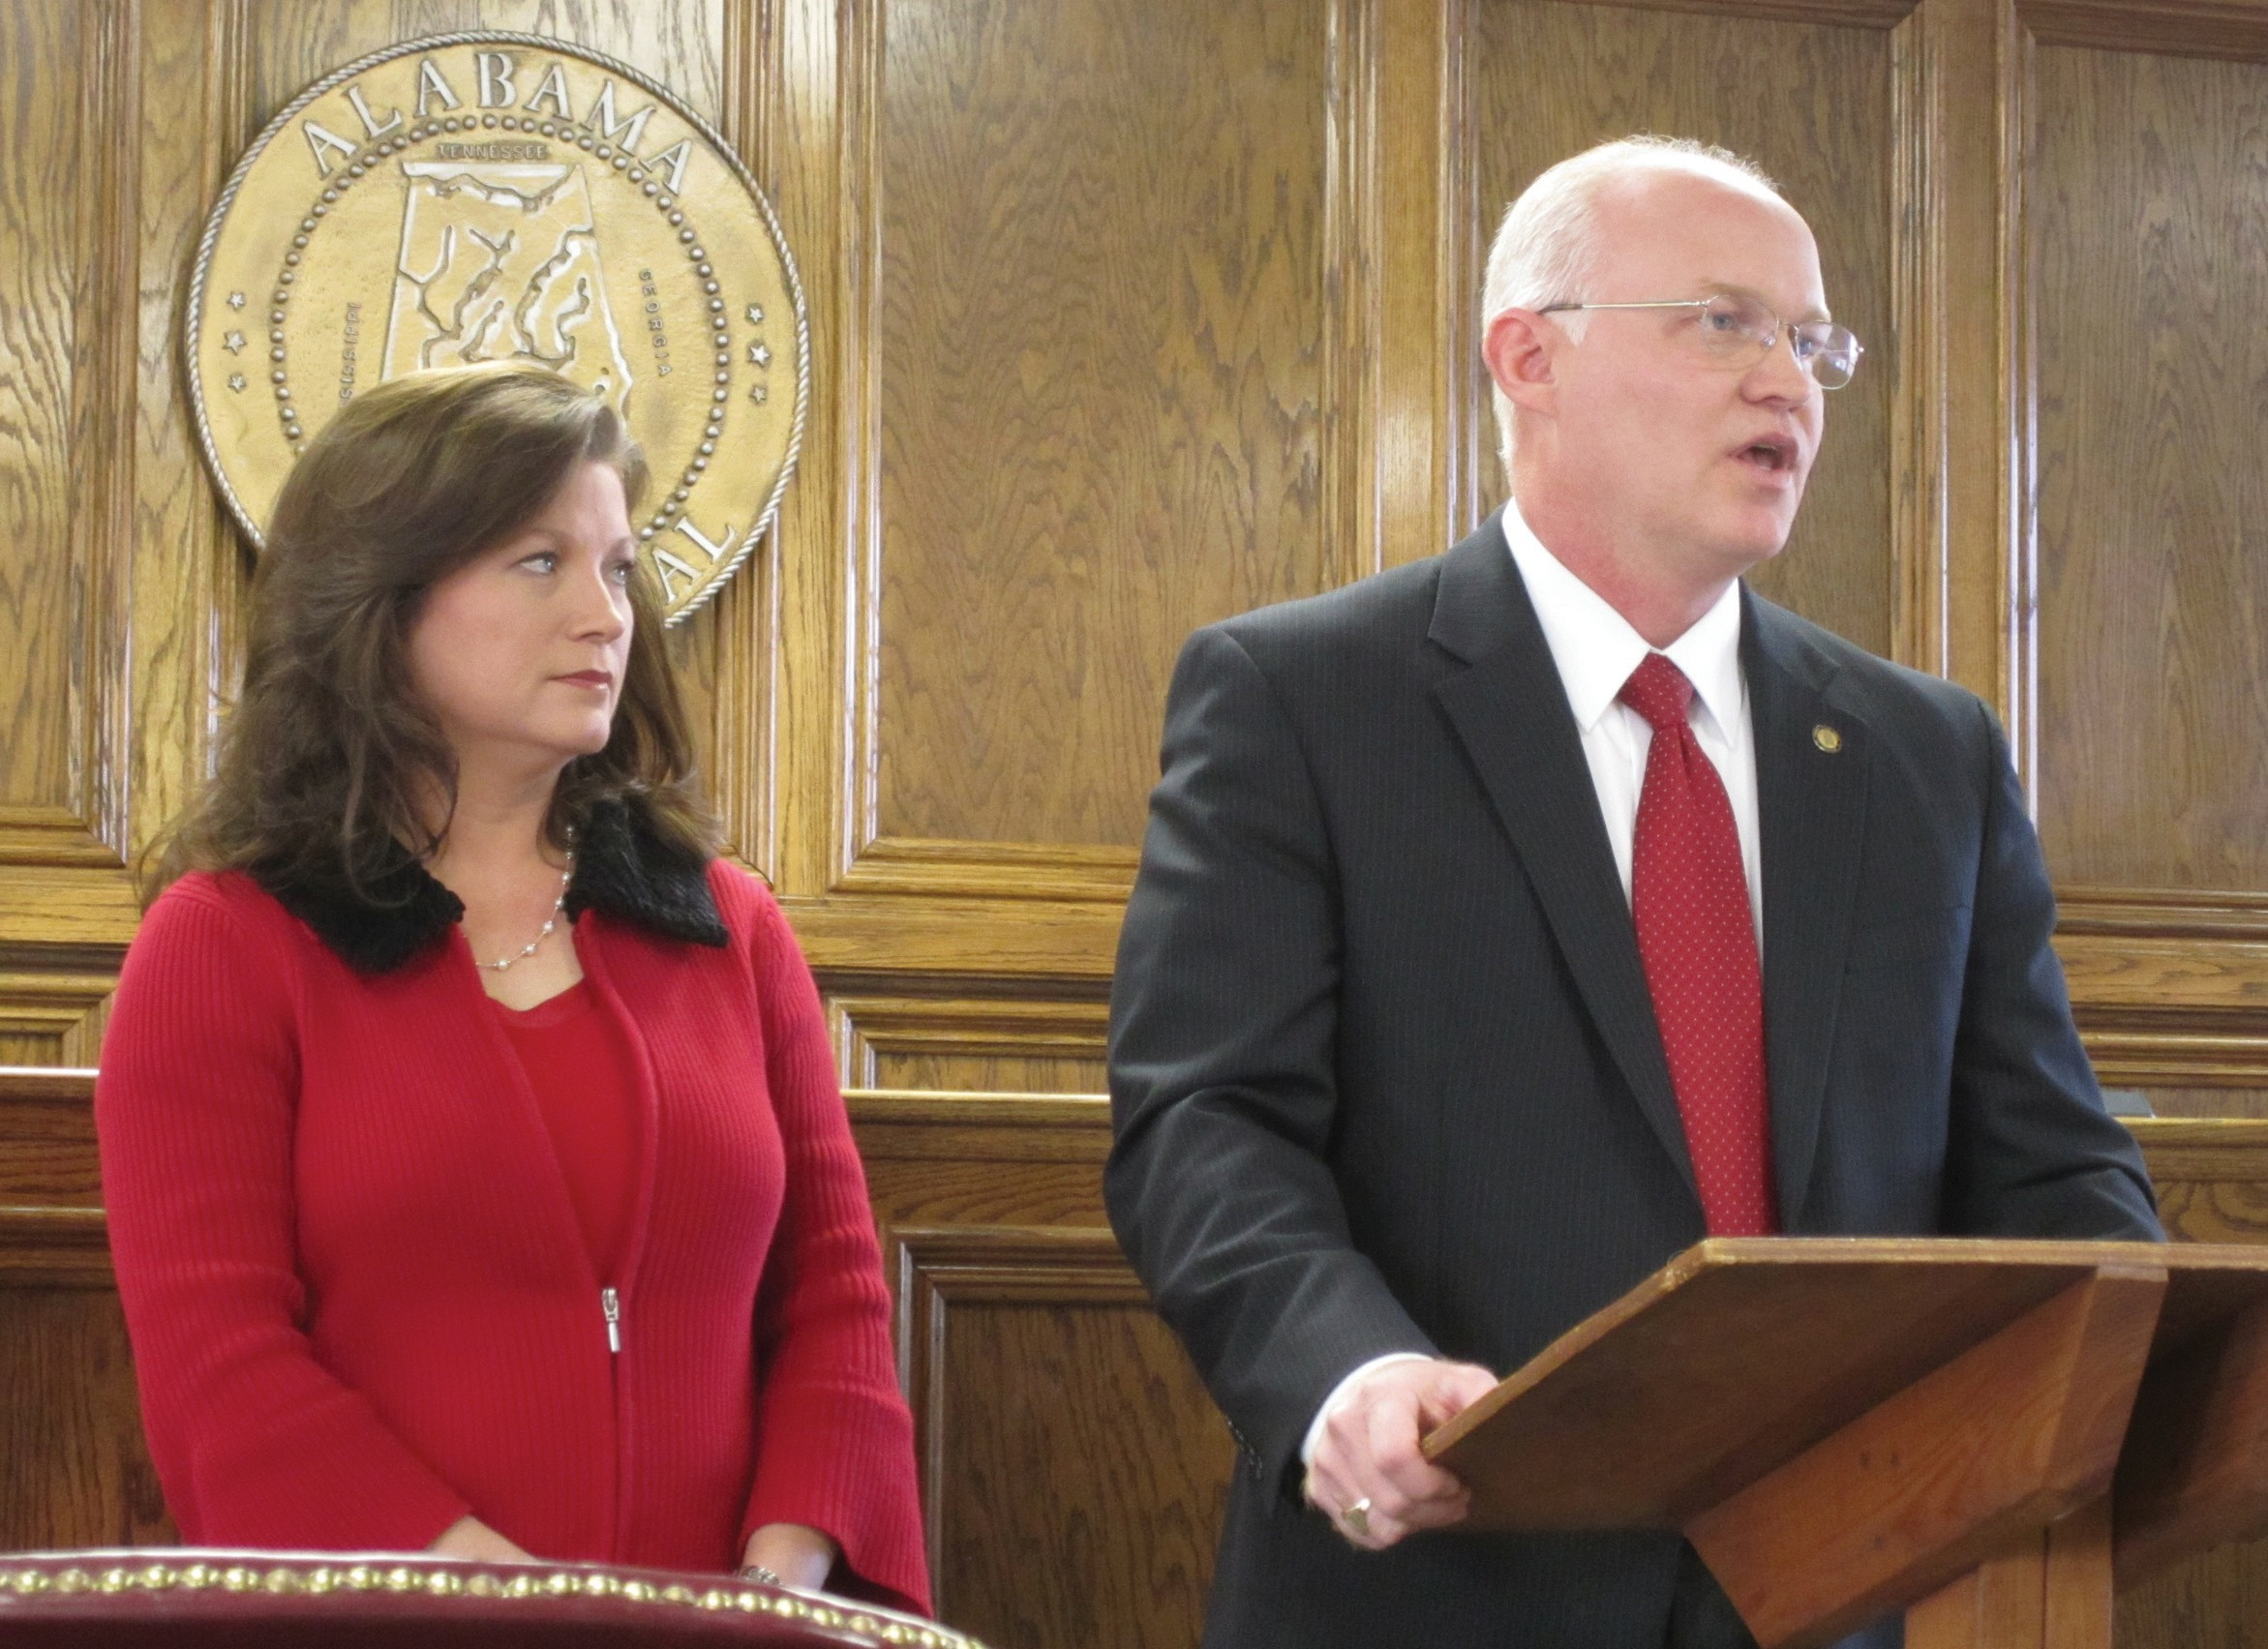 Probate Judge David Standridge, accompanied by his wife Danna, announces his candidacy Friday for the Republican nomination for U.S. Representative, District 6. A crowded field of candidates promises to give incumbent Spencer Bachus the most serious challenge of his 10-term career.